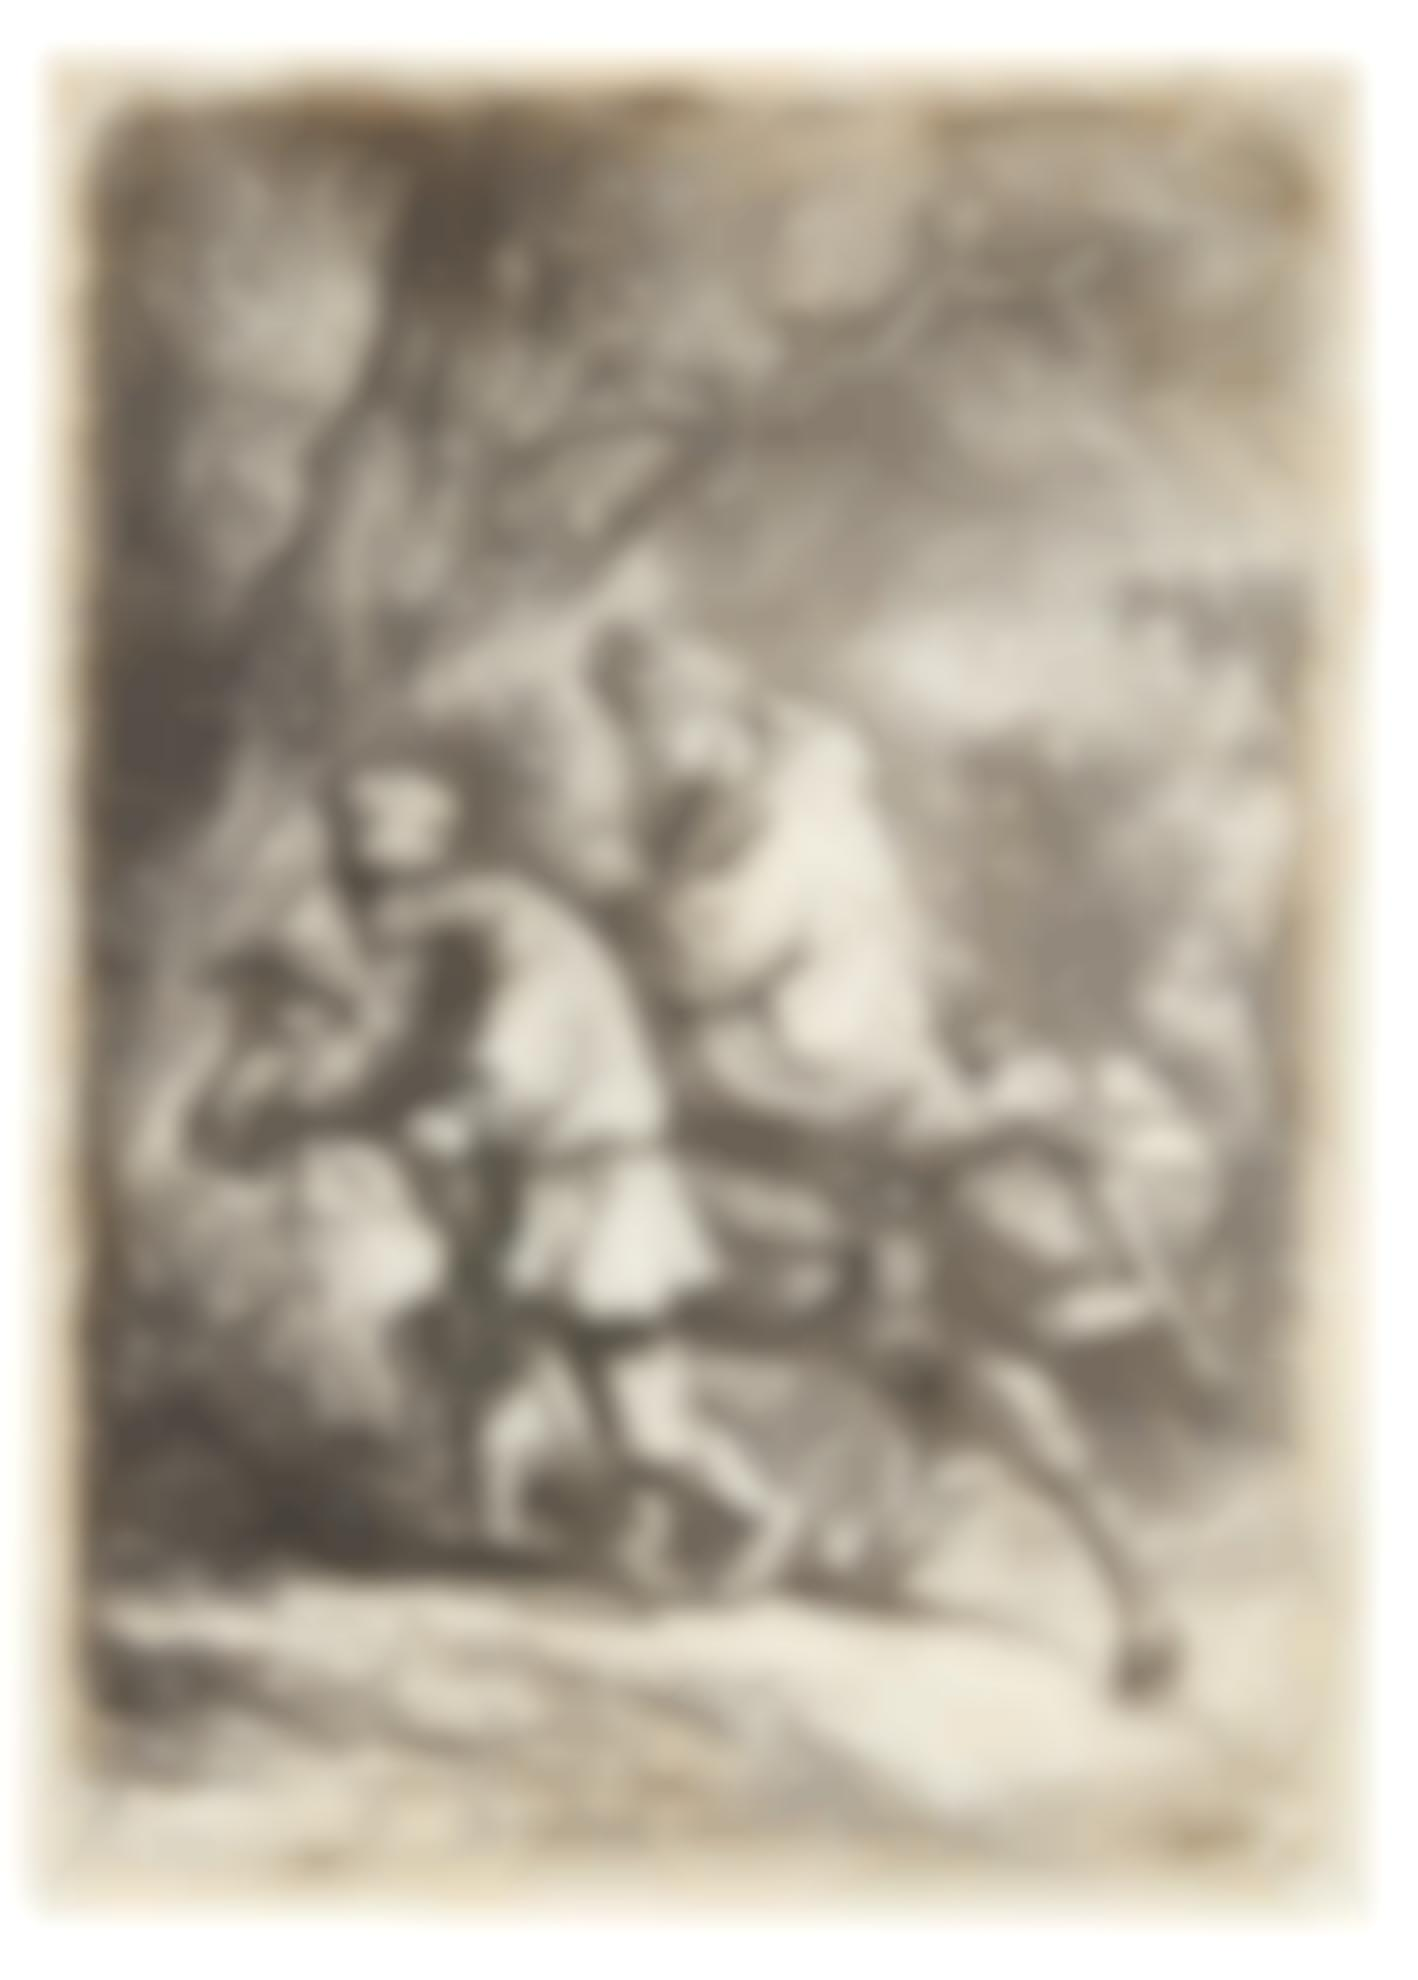 Rembrandt van Rijn-(i) The Flight Into Egypt: Small (B., Holl. 52; New Holl. 117; H. 105); (ii) The Flight into Egypt: Crossing a Brook (New Holl. 277); (iii) The Circumcision in the Stable (New Holl. 280)-1654